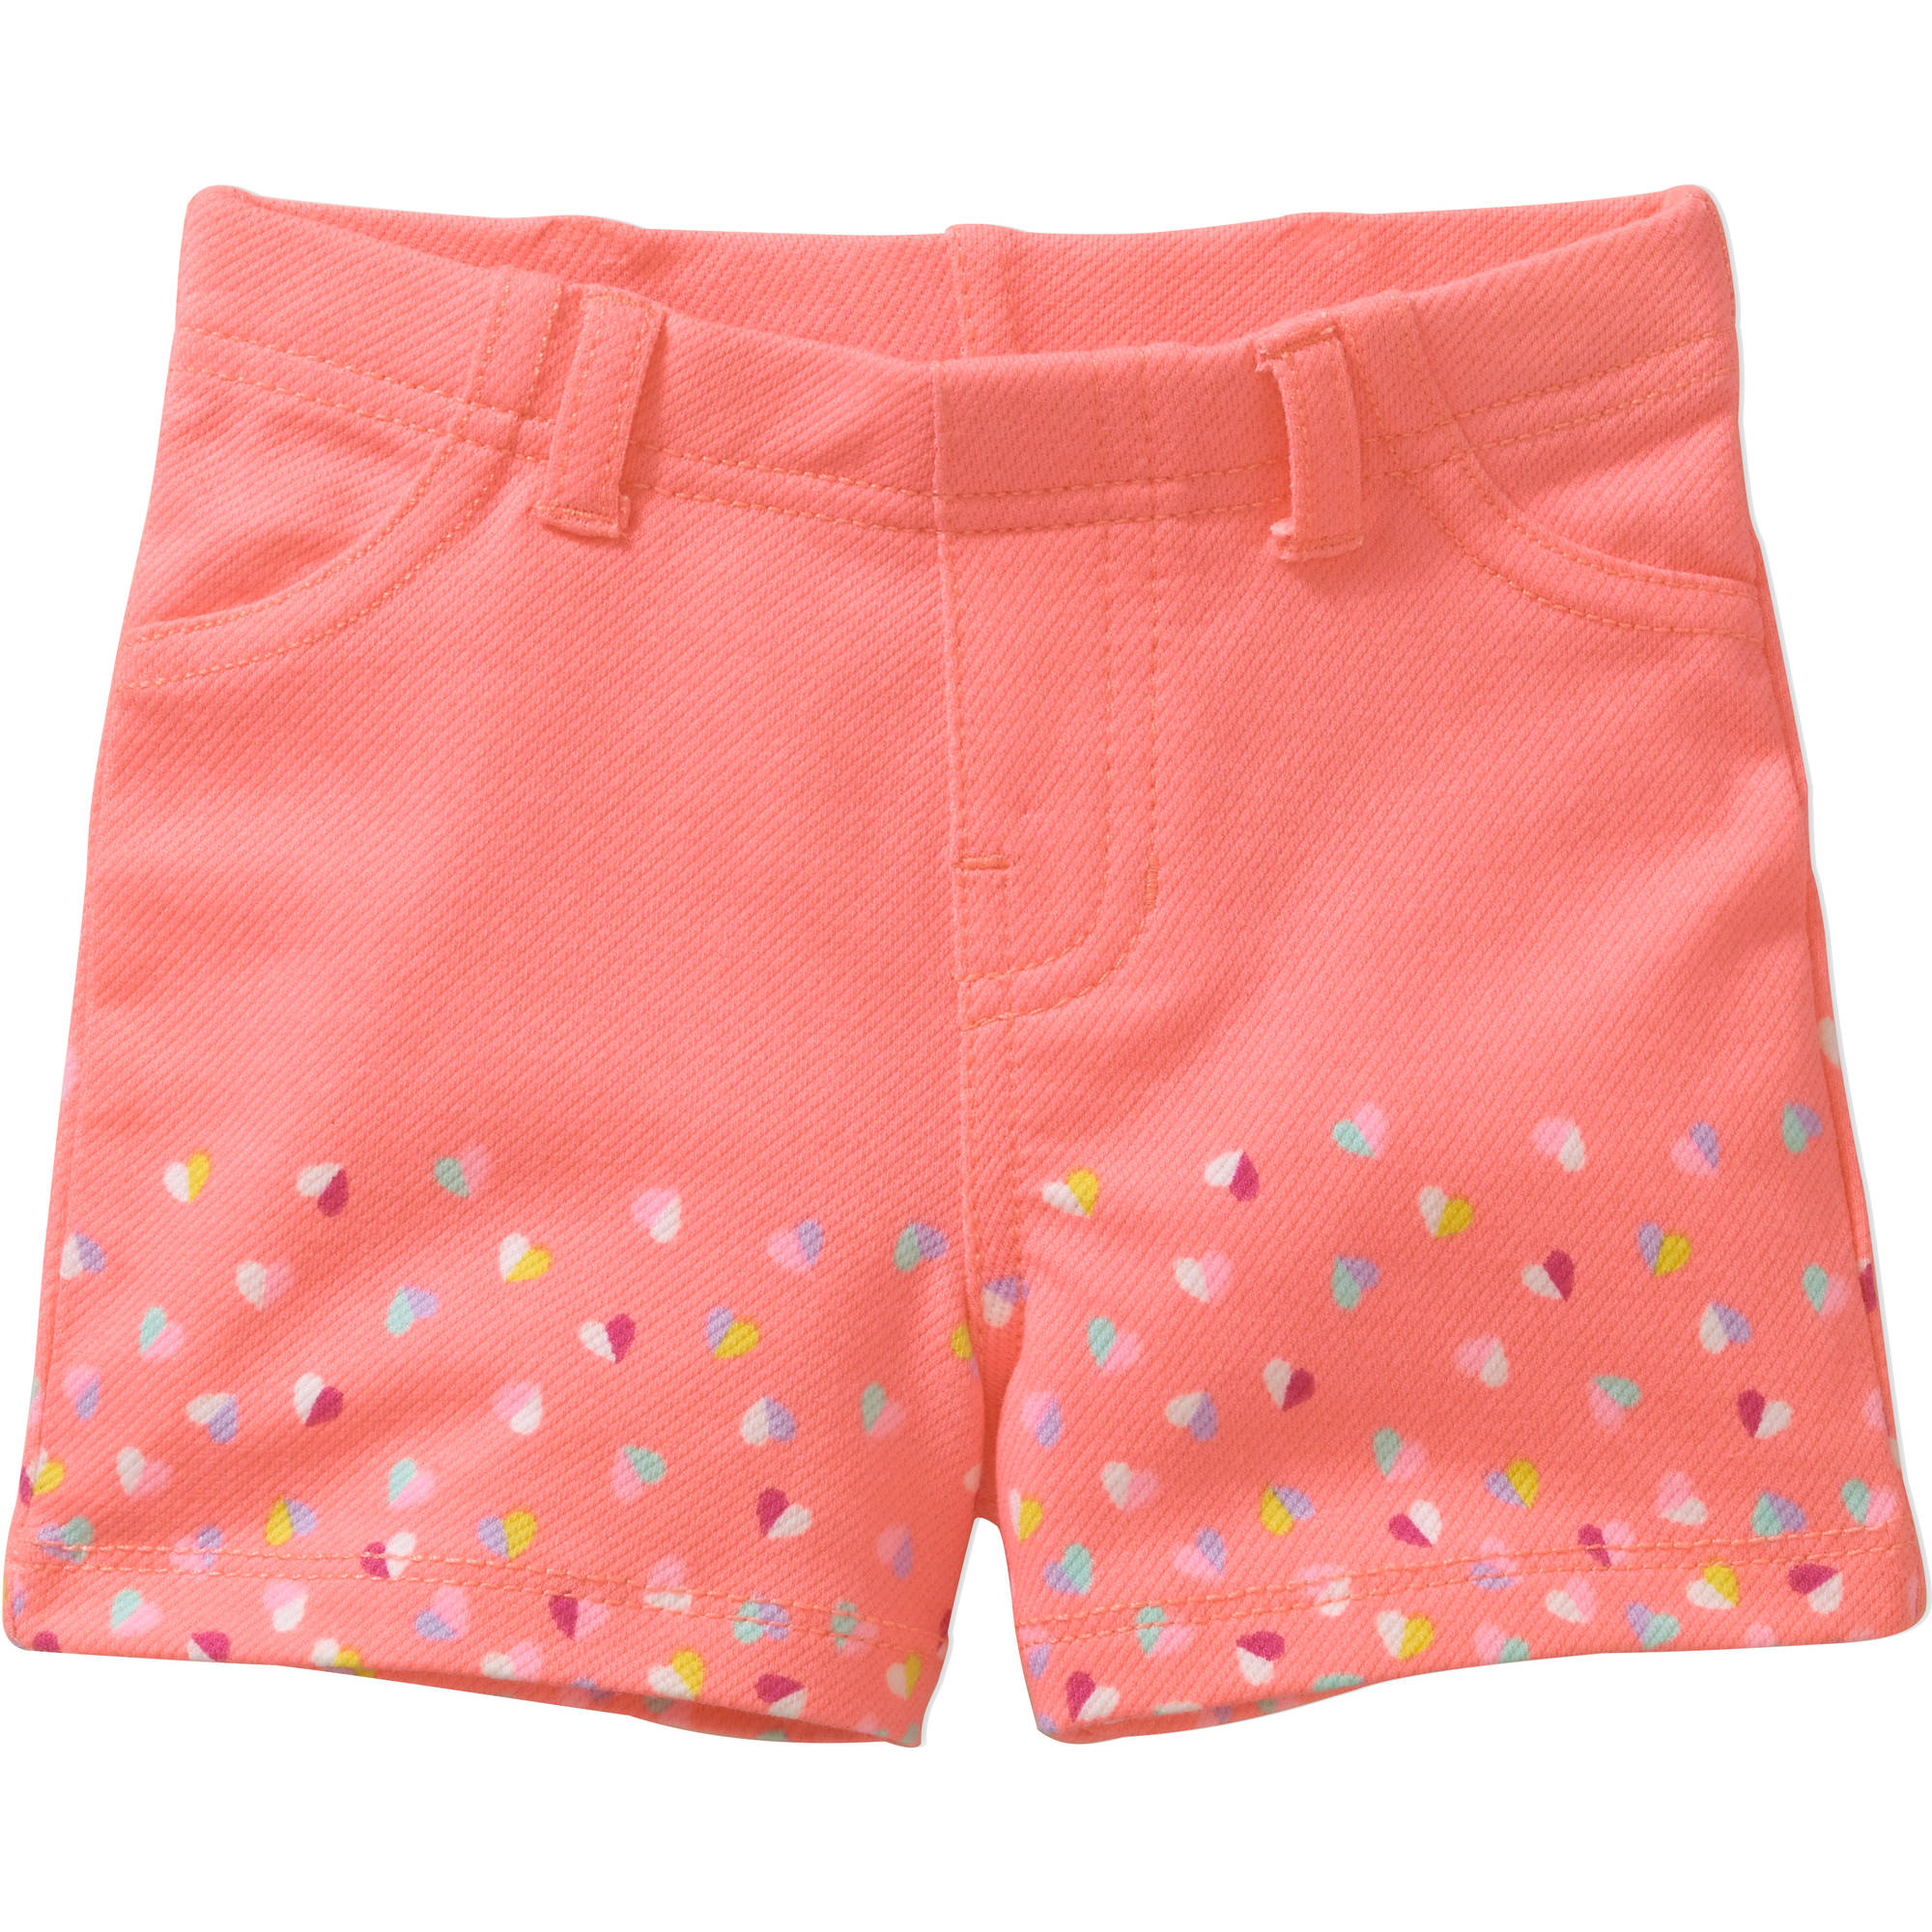 Baby & Toddler Clothing Shorts & Capris - Walmart.com